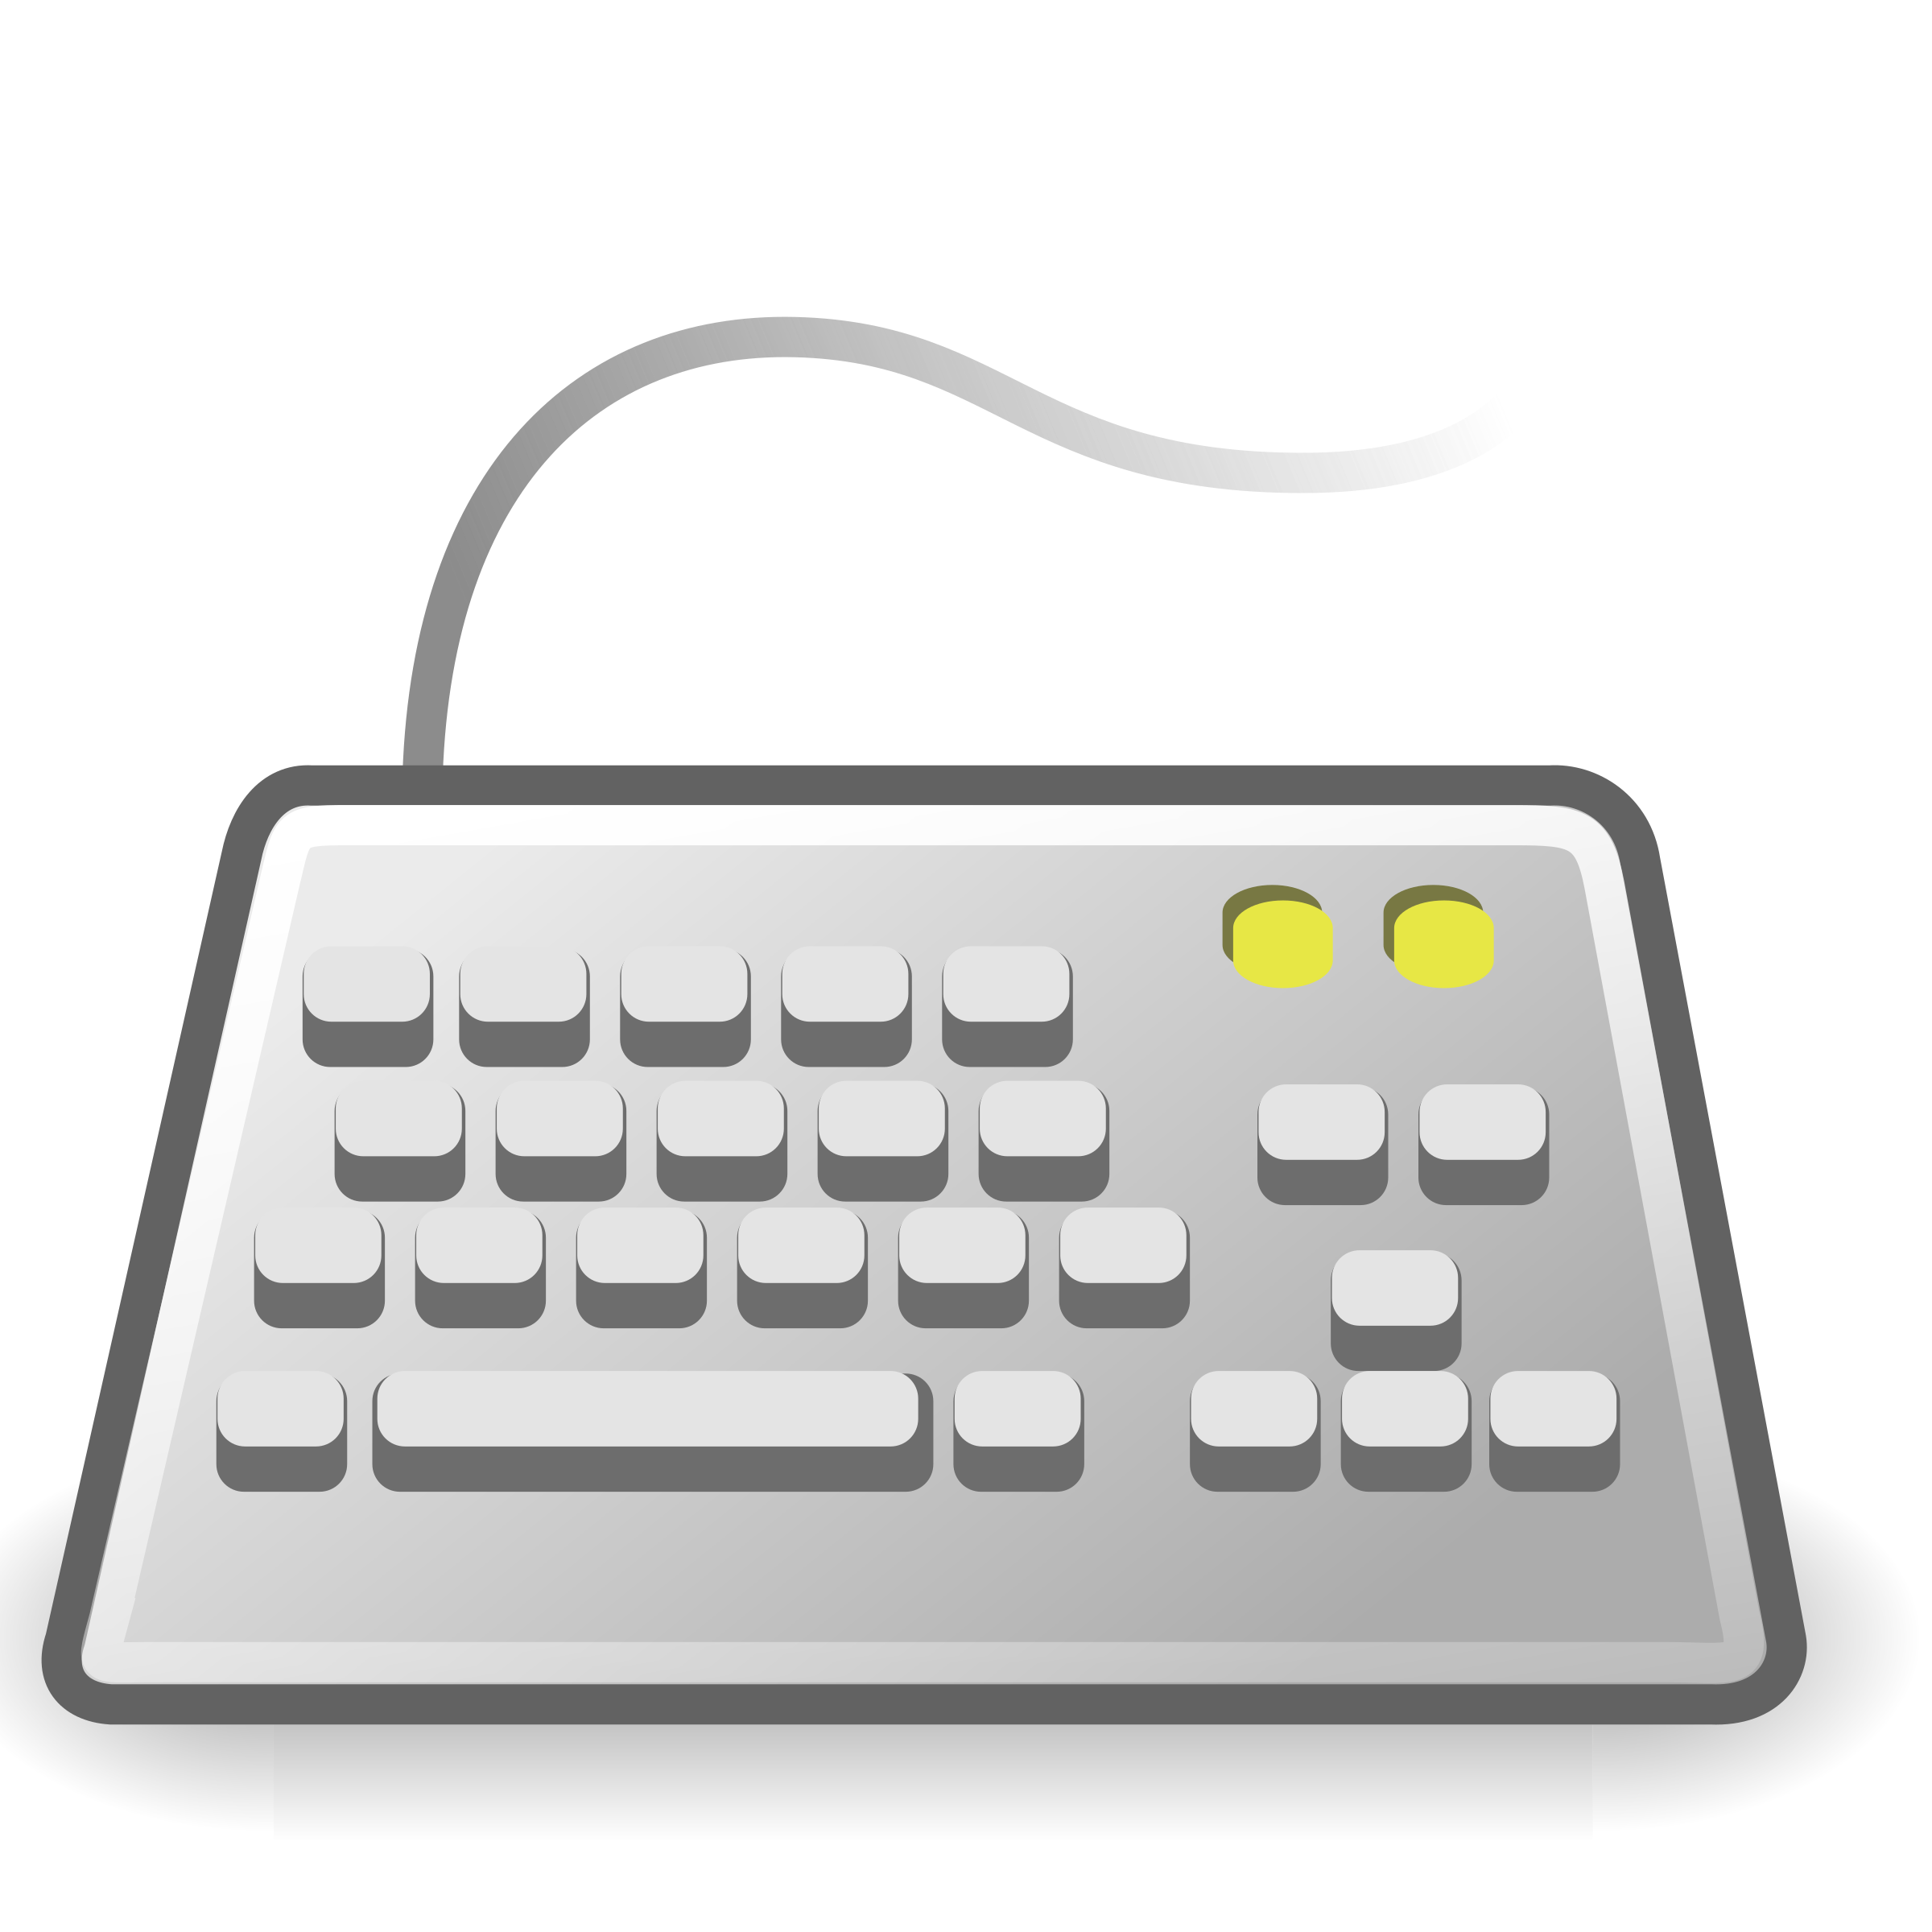 Clip keyboard png. Tango input icons free